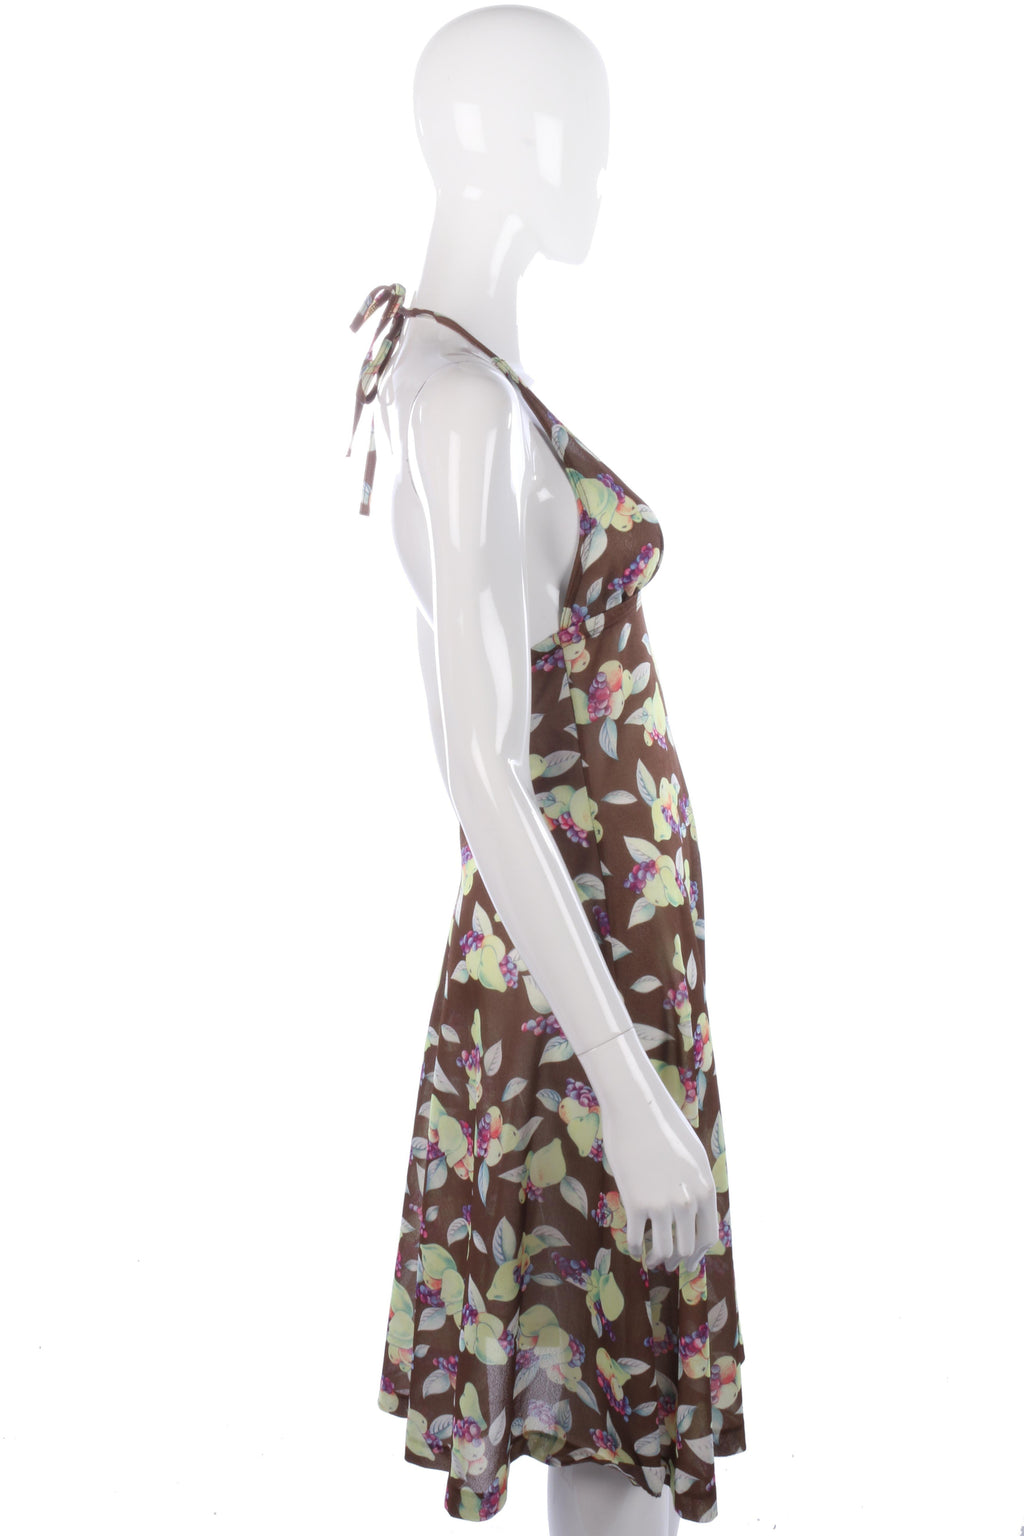 1970s vintage floral halter neck dress size S